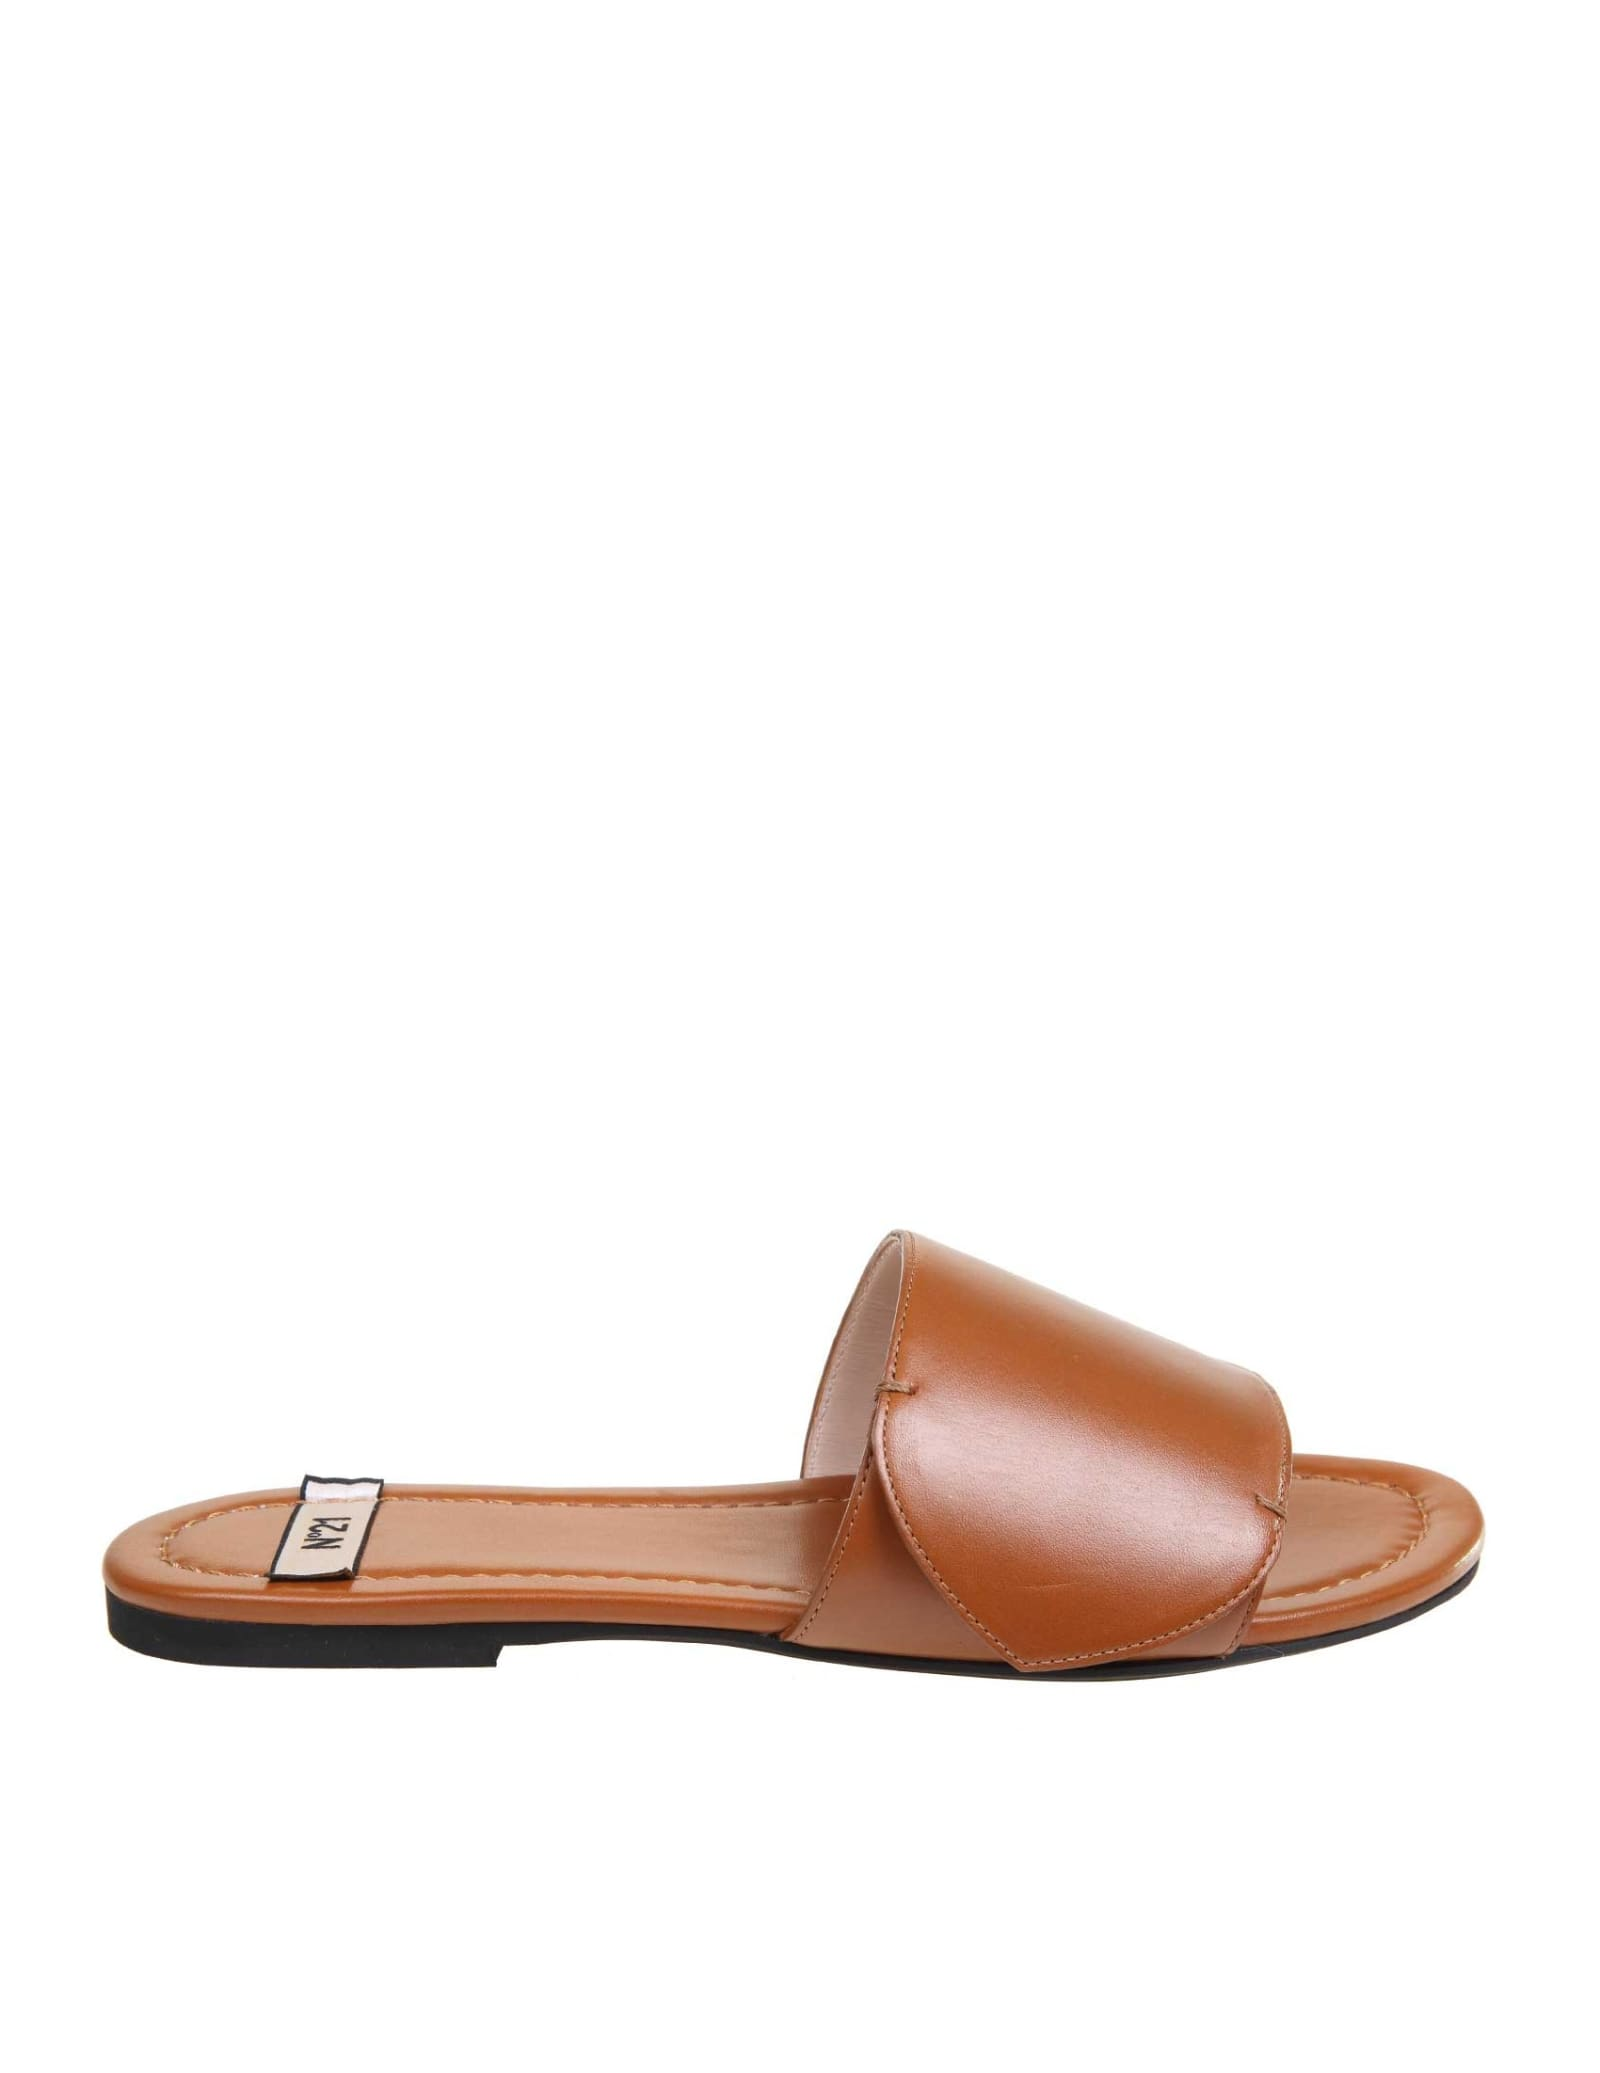 Calfskin sandal leather color model with open round tip golden metal logo leather interior flat heel rubber sole composition: upper: 100% calfskin; lining: 100% goat leather; sole: 100% rubber made in italy